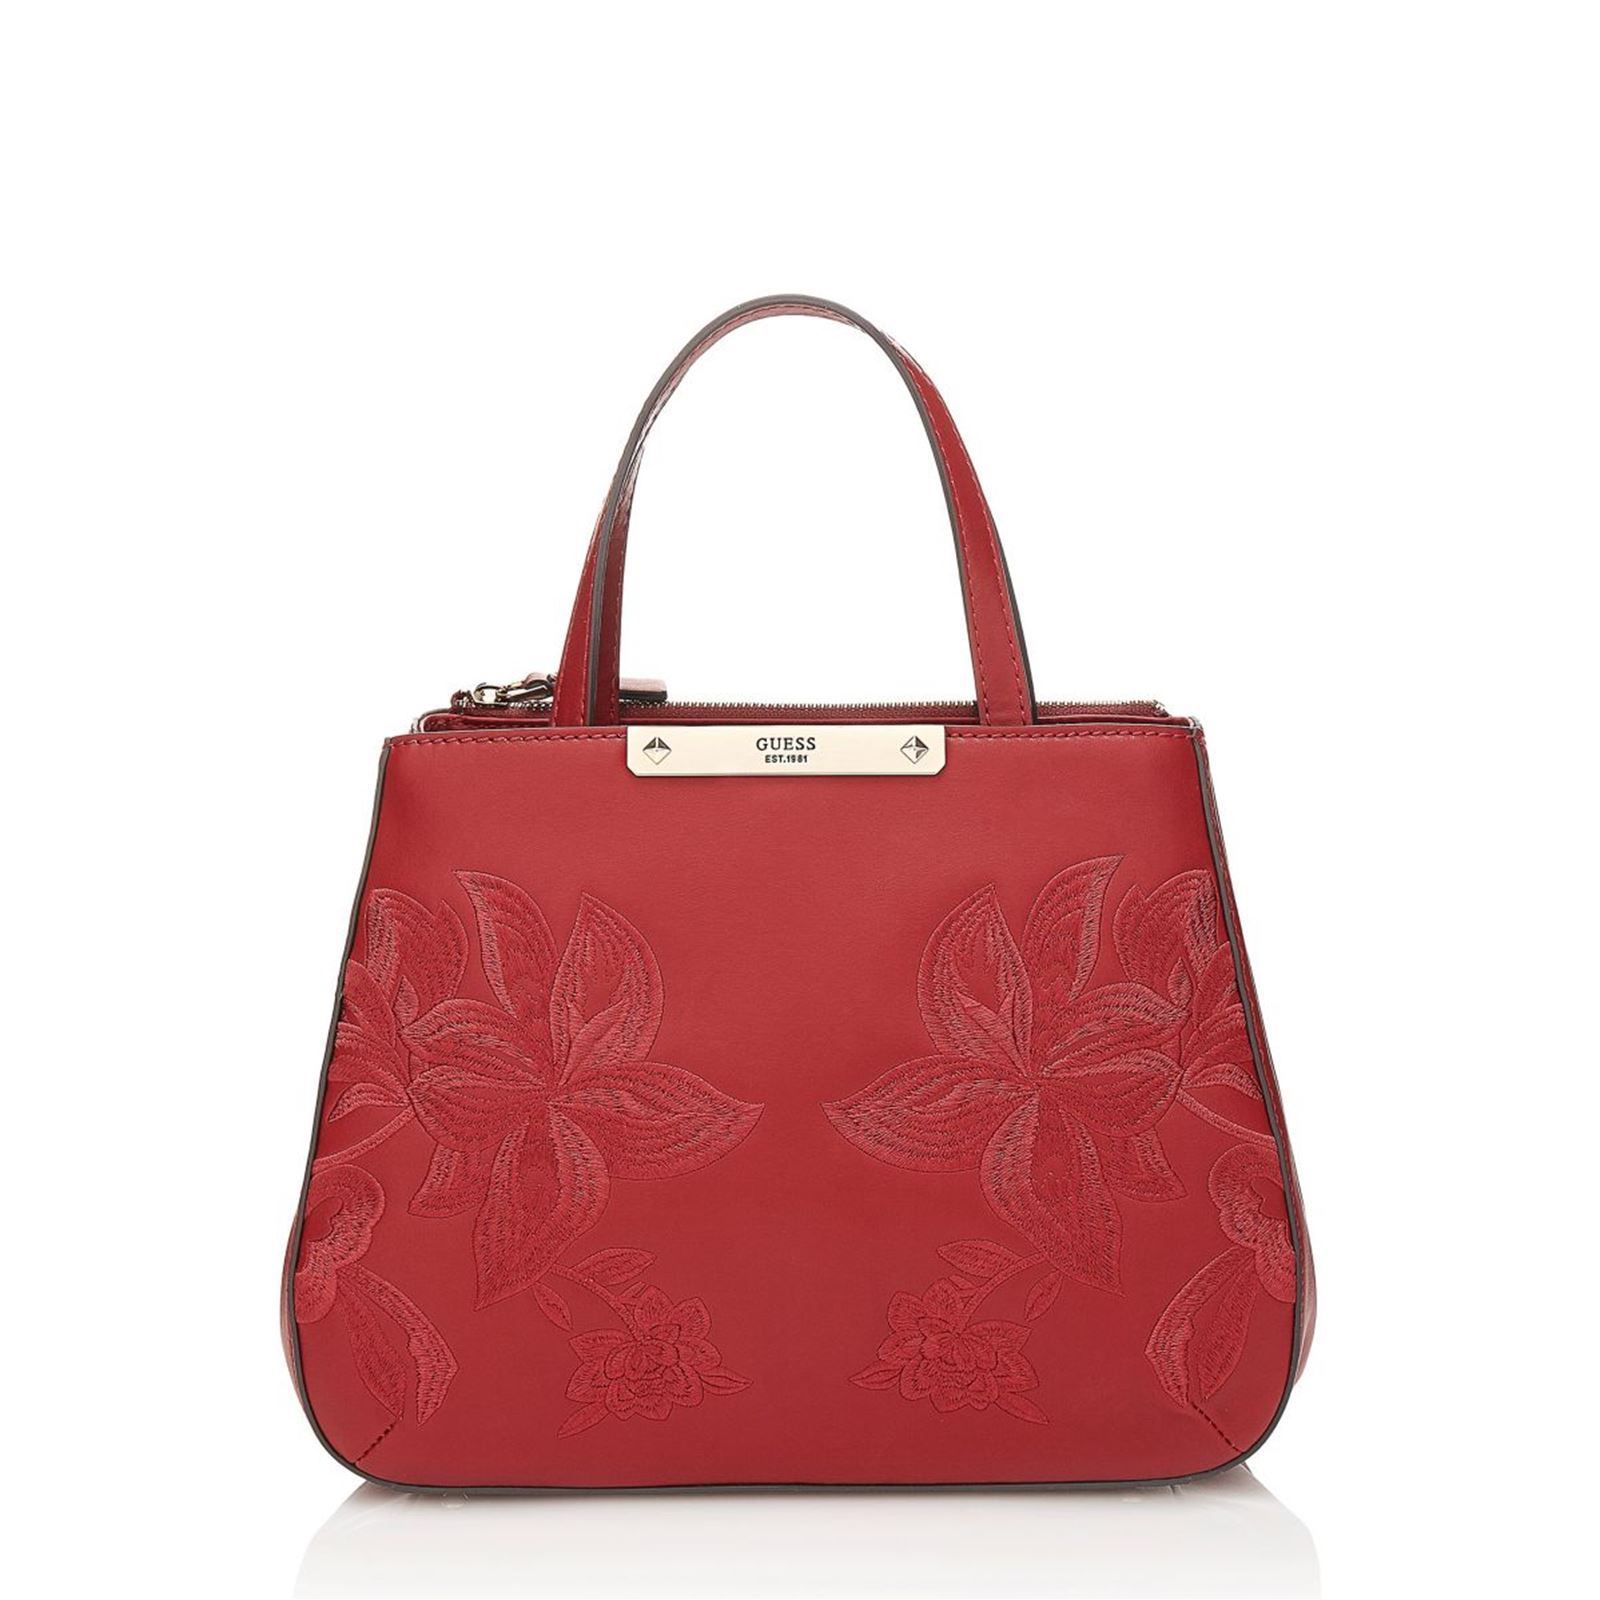 Guess Britta - Sac cabas avec broderies florales - rouge   BrandAlley edc75131a372